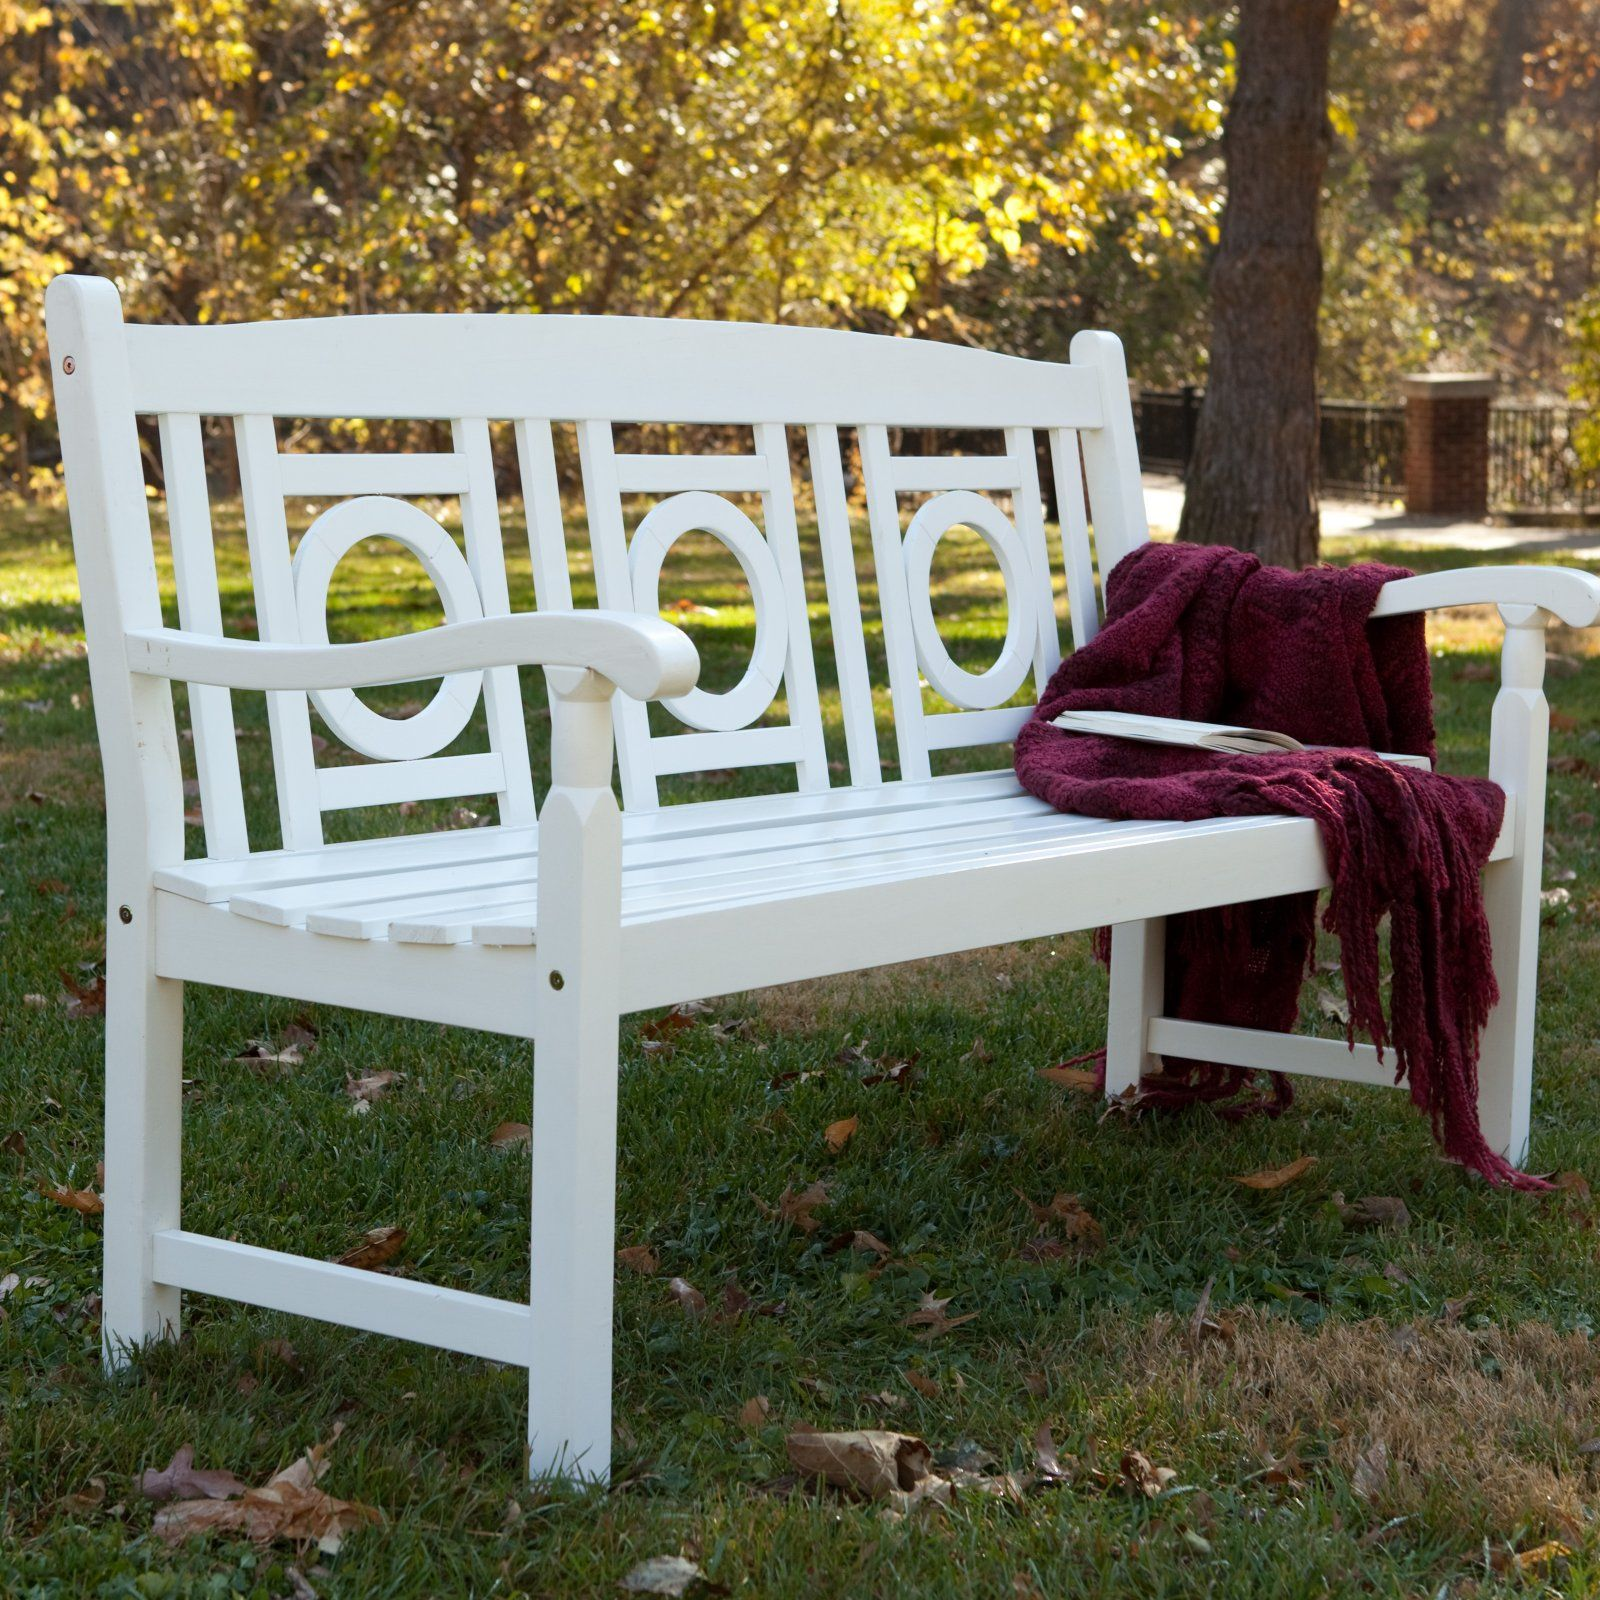 Excellent Barrington 5 Ft Painted Wood Garden Bench White Outdoor Machost Co Dining Chair Design Ideas Machostcouk